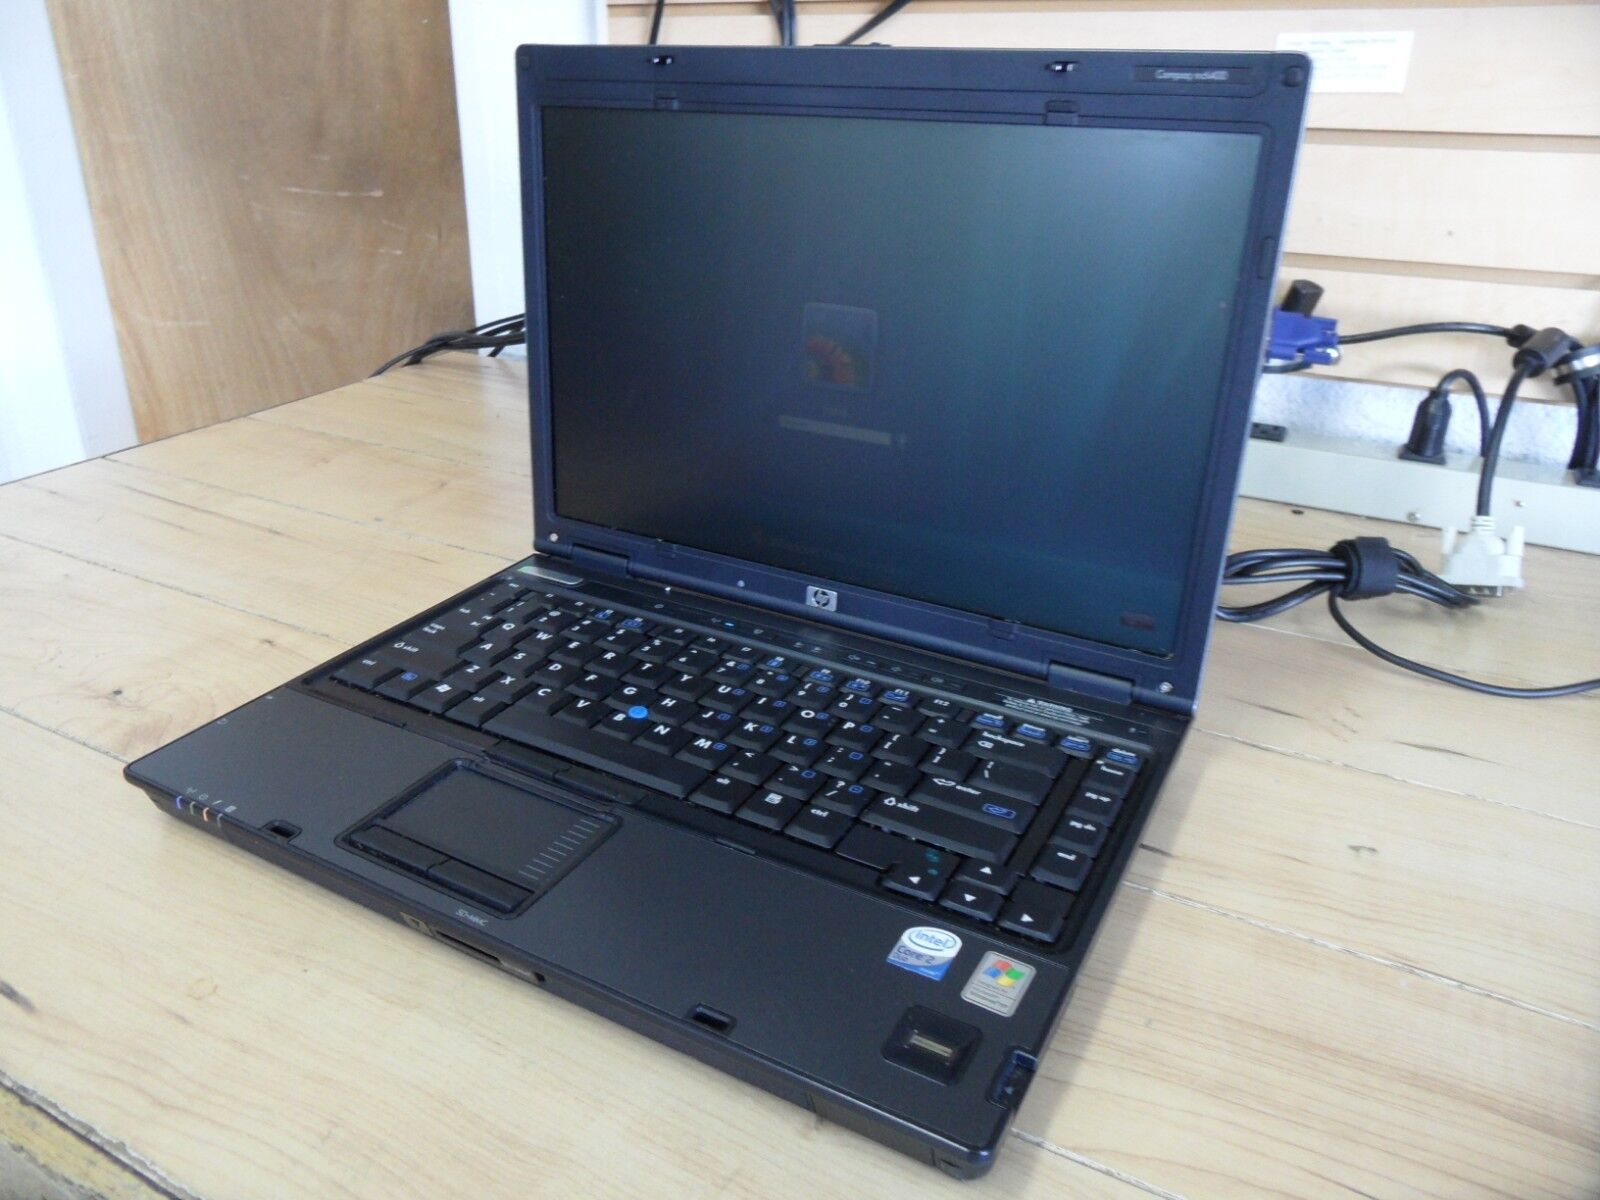 Compaq nc6400 Laptop 4 Parts Booted Windows 80GB Hard Drive Wiped